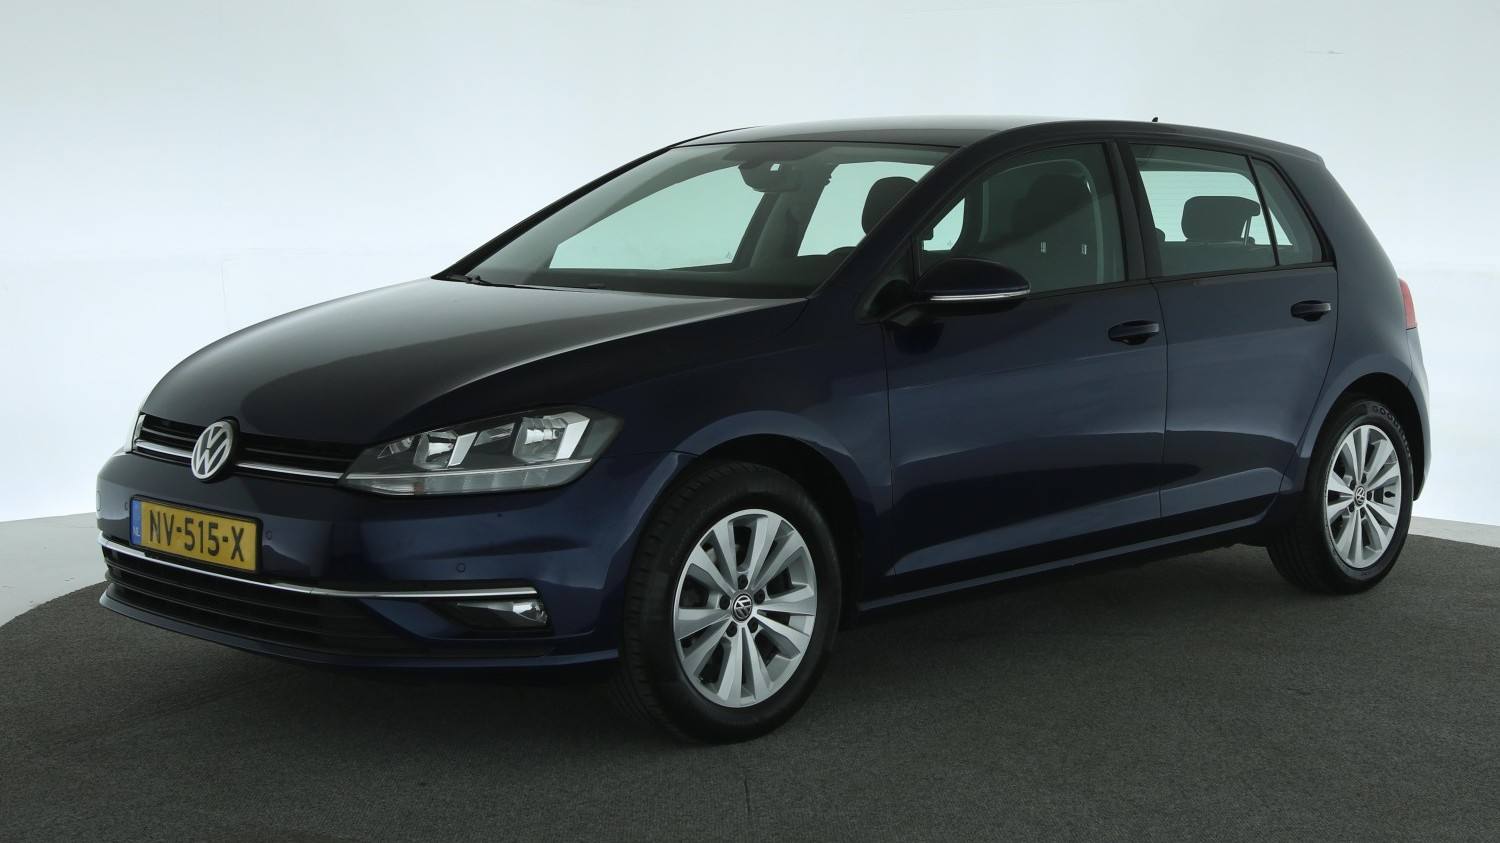 Volkswagen Golf Hatchback 2017 NV-515-X 1